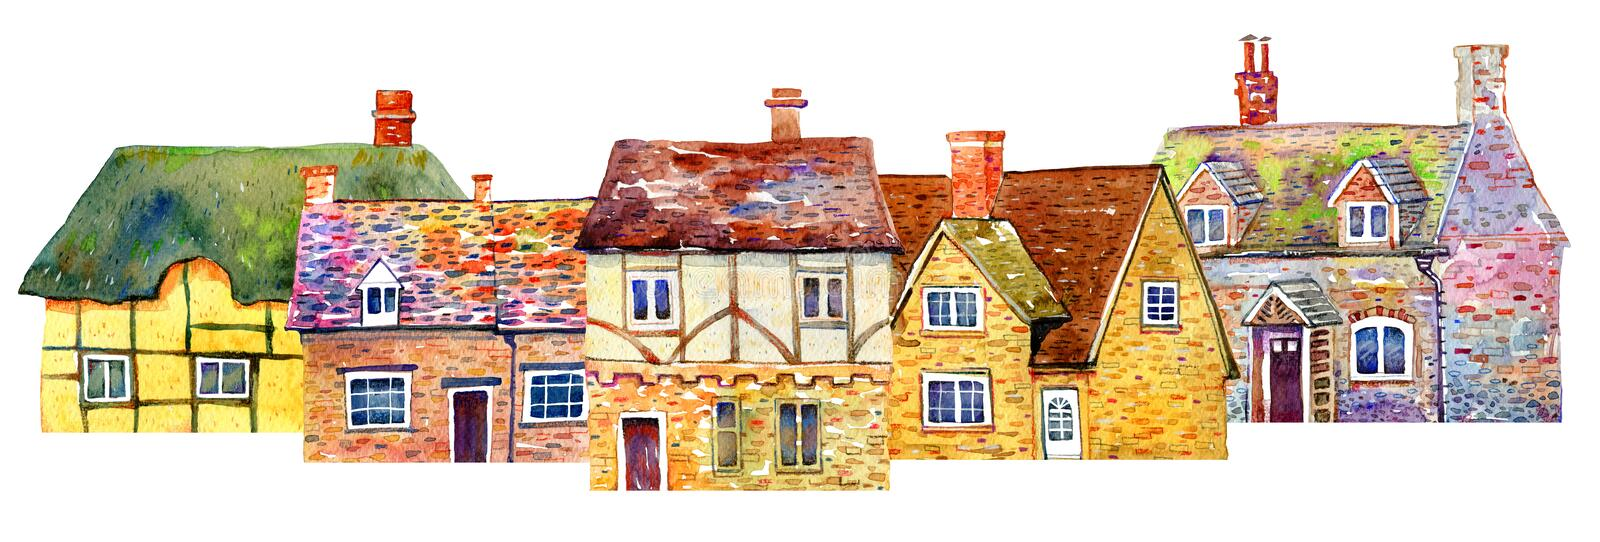 Street view with English village buildings in row. Watercolor old stone europe houses. Hand drawn illustration royalty free stock image